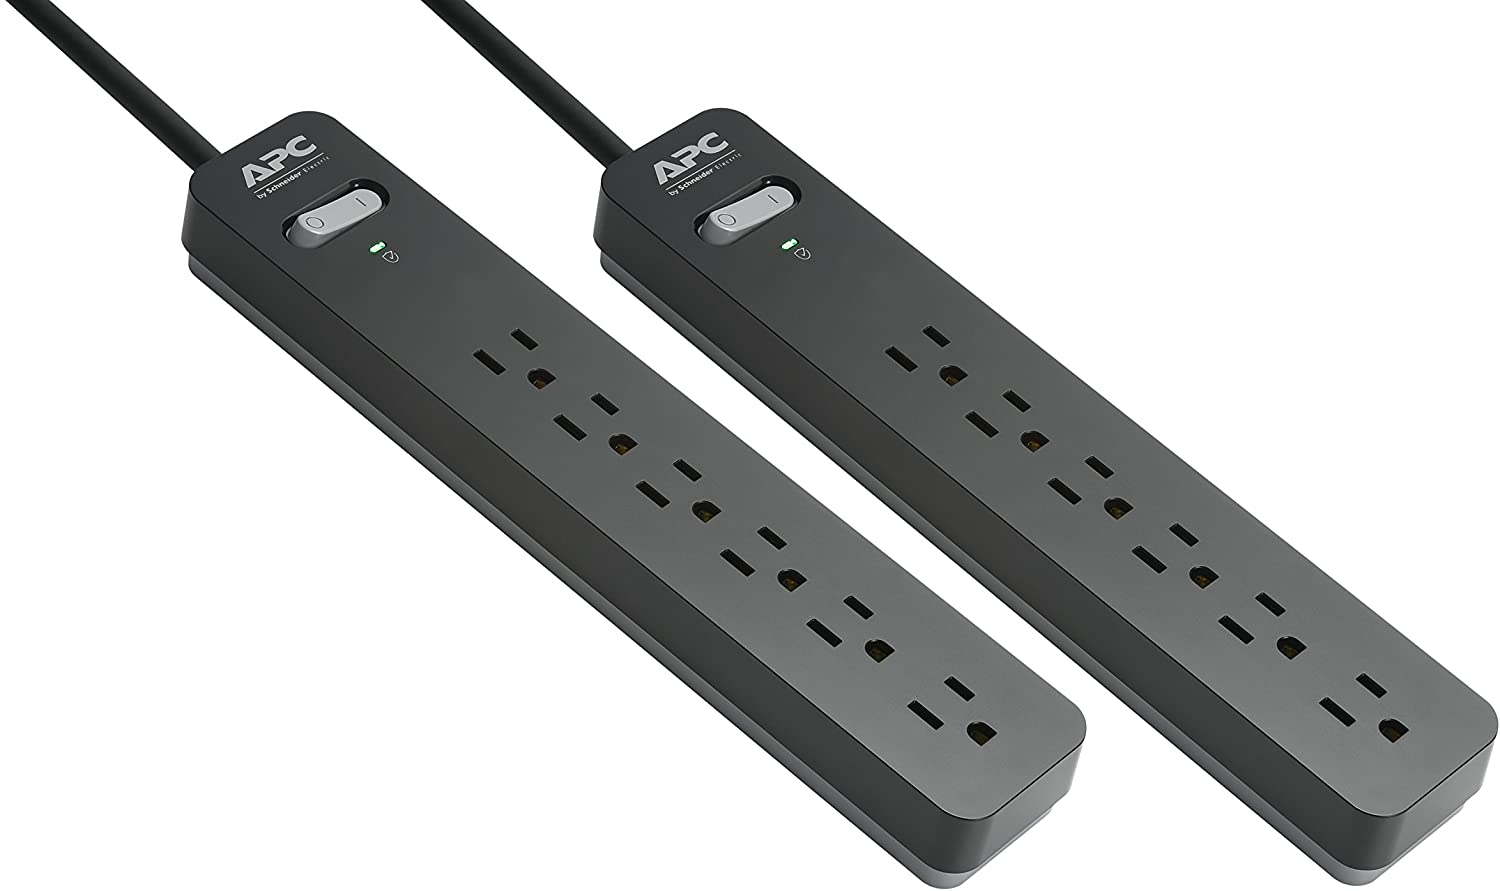 Power Strips with Surge Protection, 2-Pack, APC black Surge Protector PE66DP, 1080 Joule, 6 Outlet Surge Strip